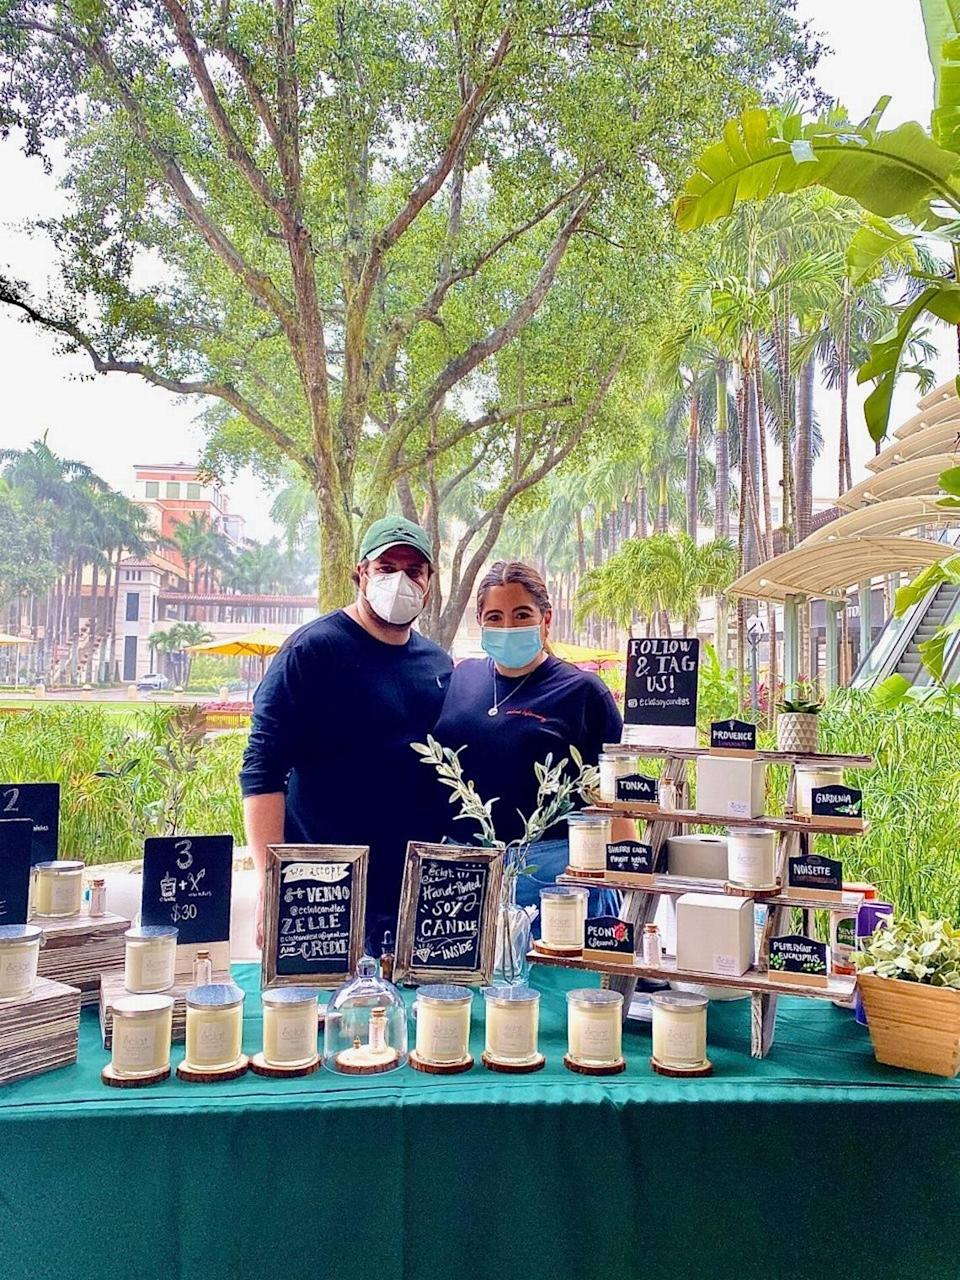 Joel and Tere Ceballos, owners of Éclat Soy Candles, created a new way for customers to smell their candle scents at the Sunday Farmers Market at Shops of Merrick Park amid the pandemic.